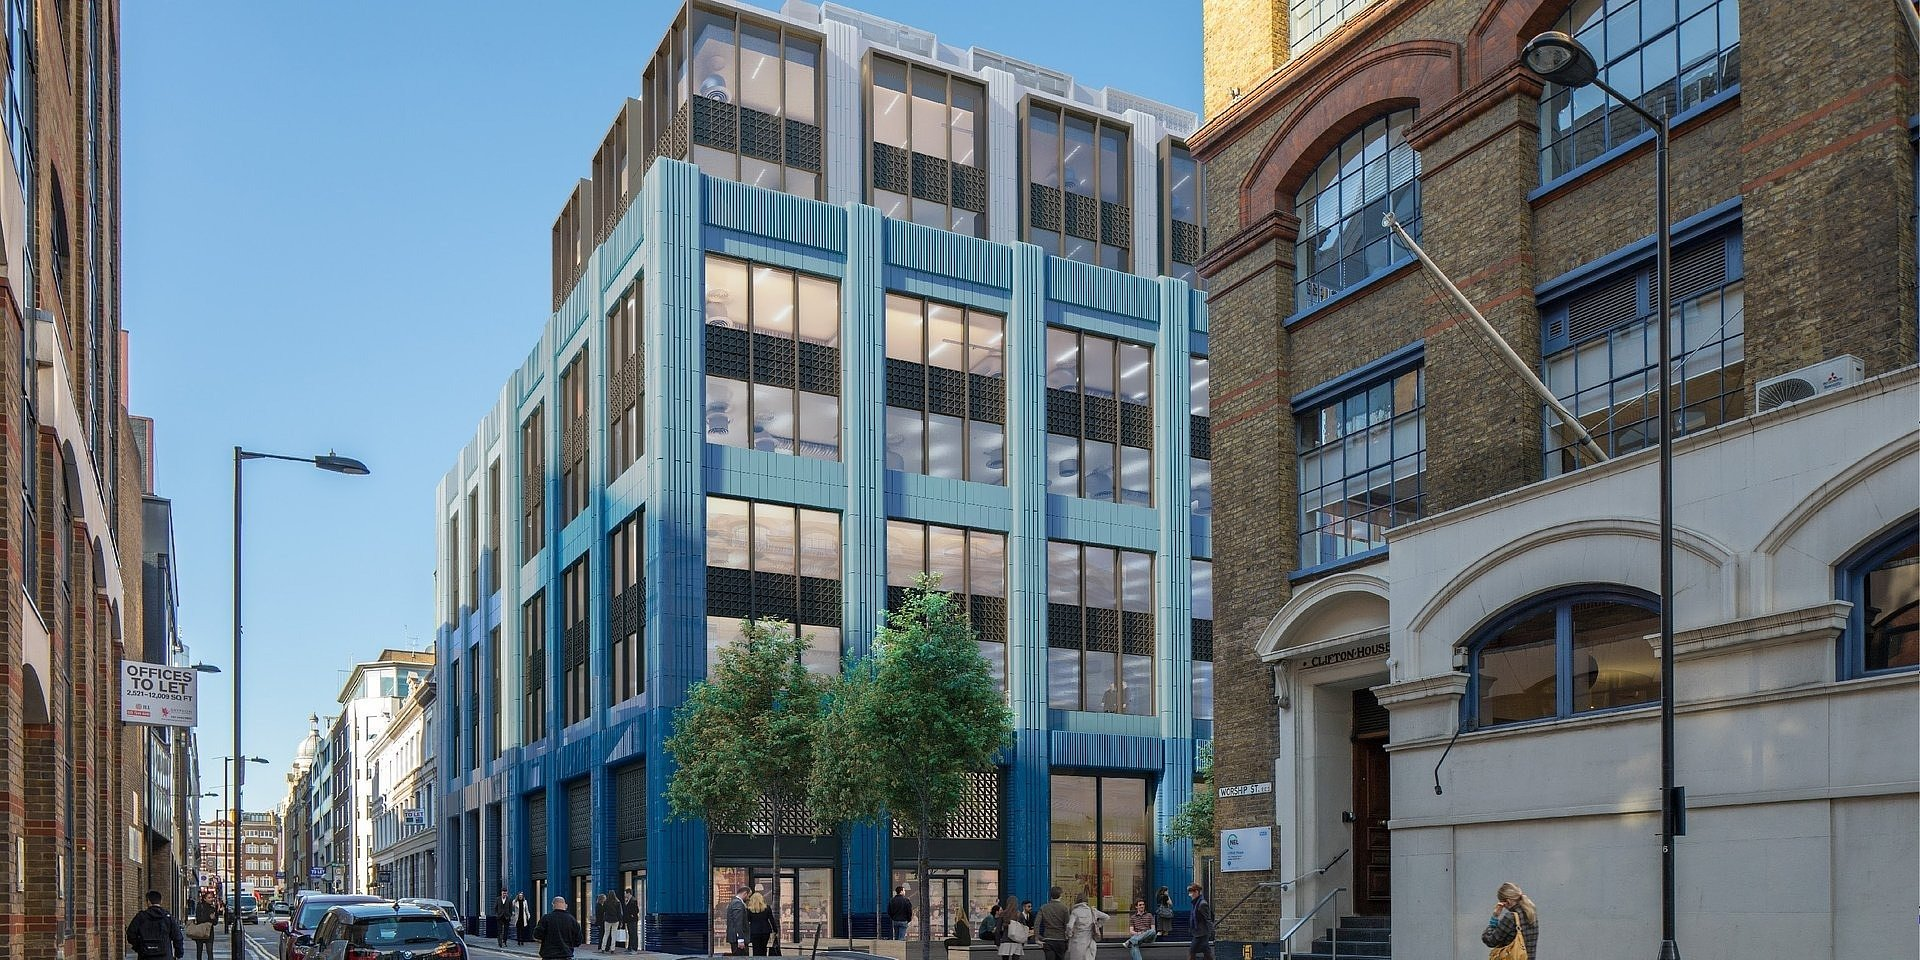 HB Reavis secures new Shoreditch acquisition and successful diverse workspaces at 20 Farringdon Street attracts buyer